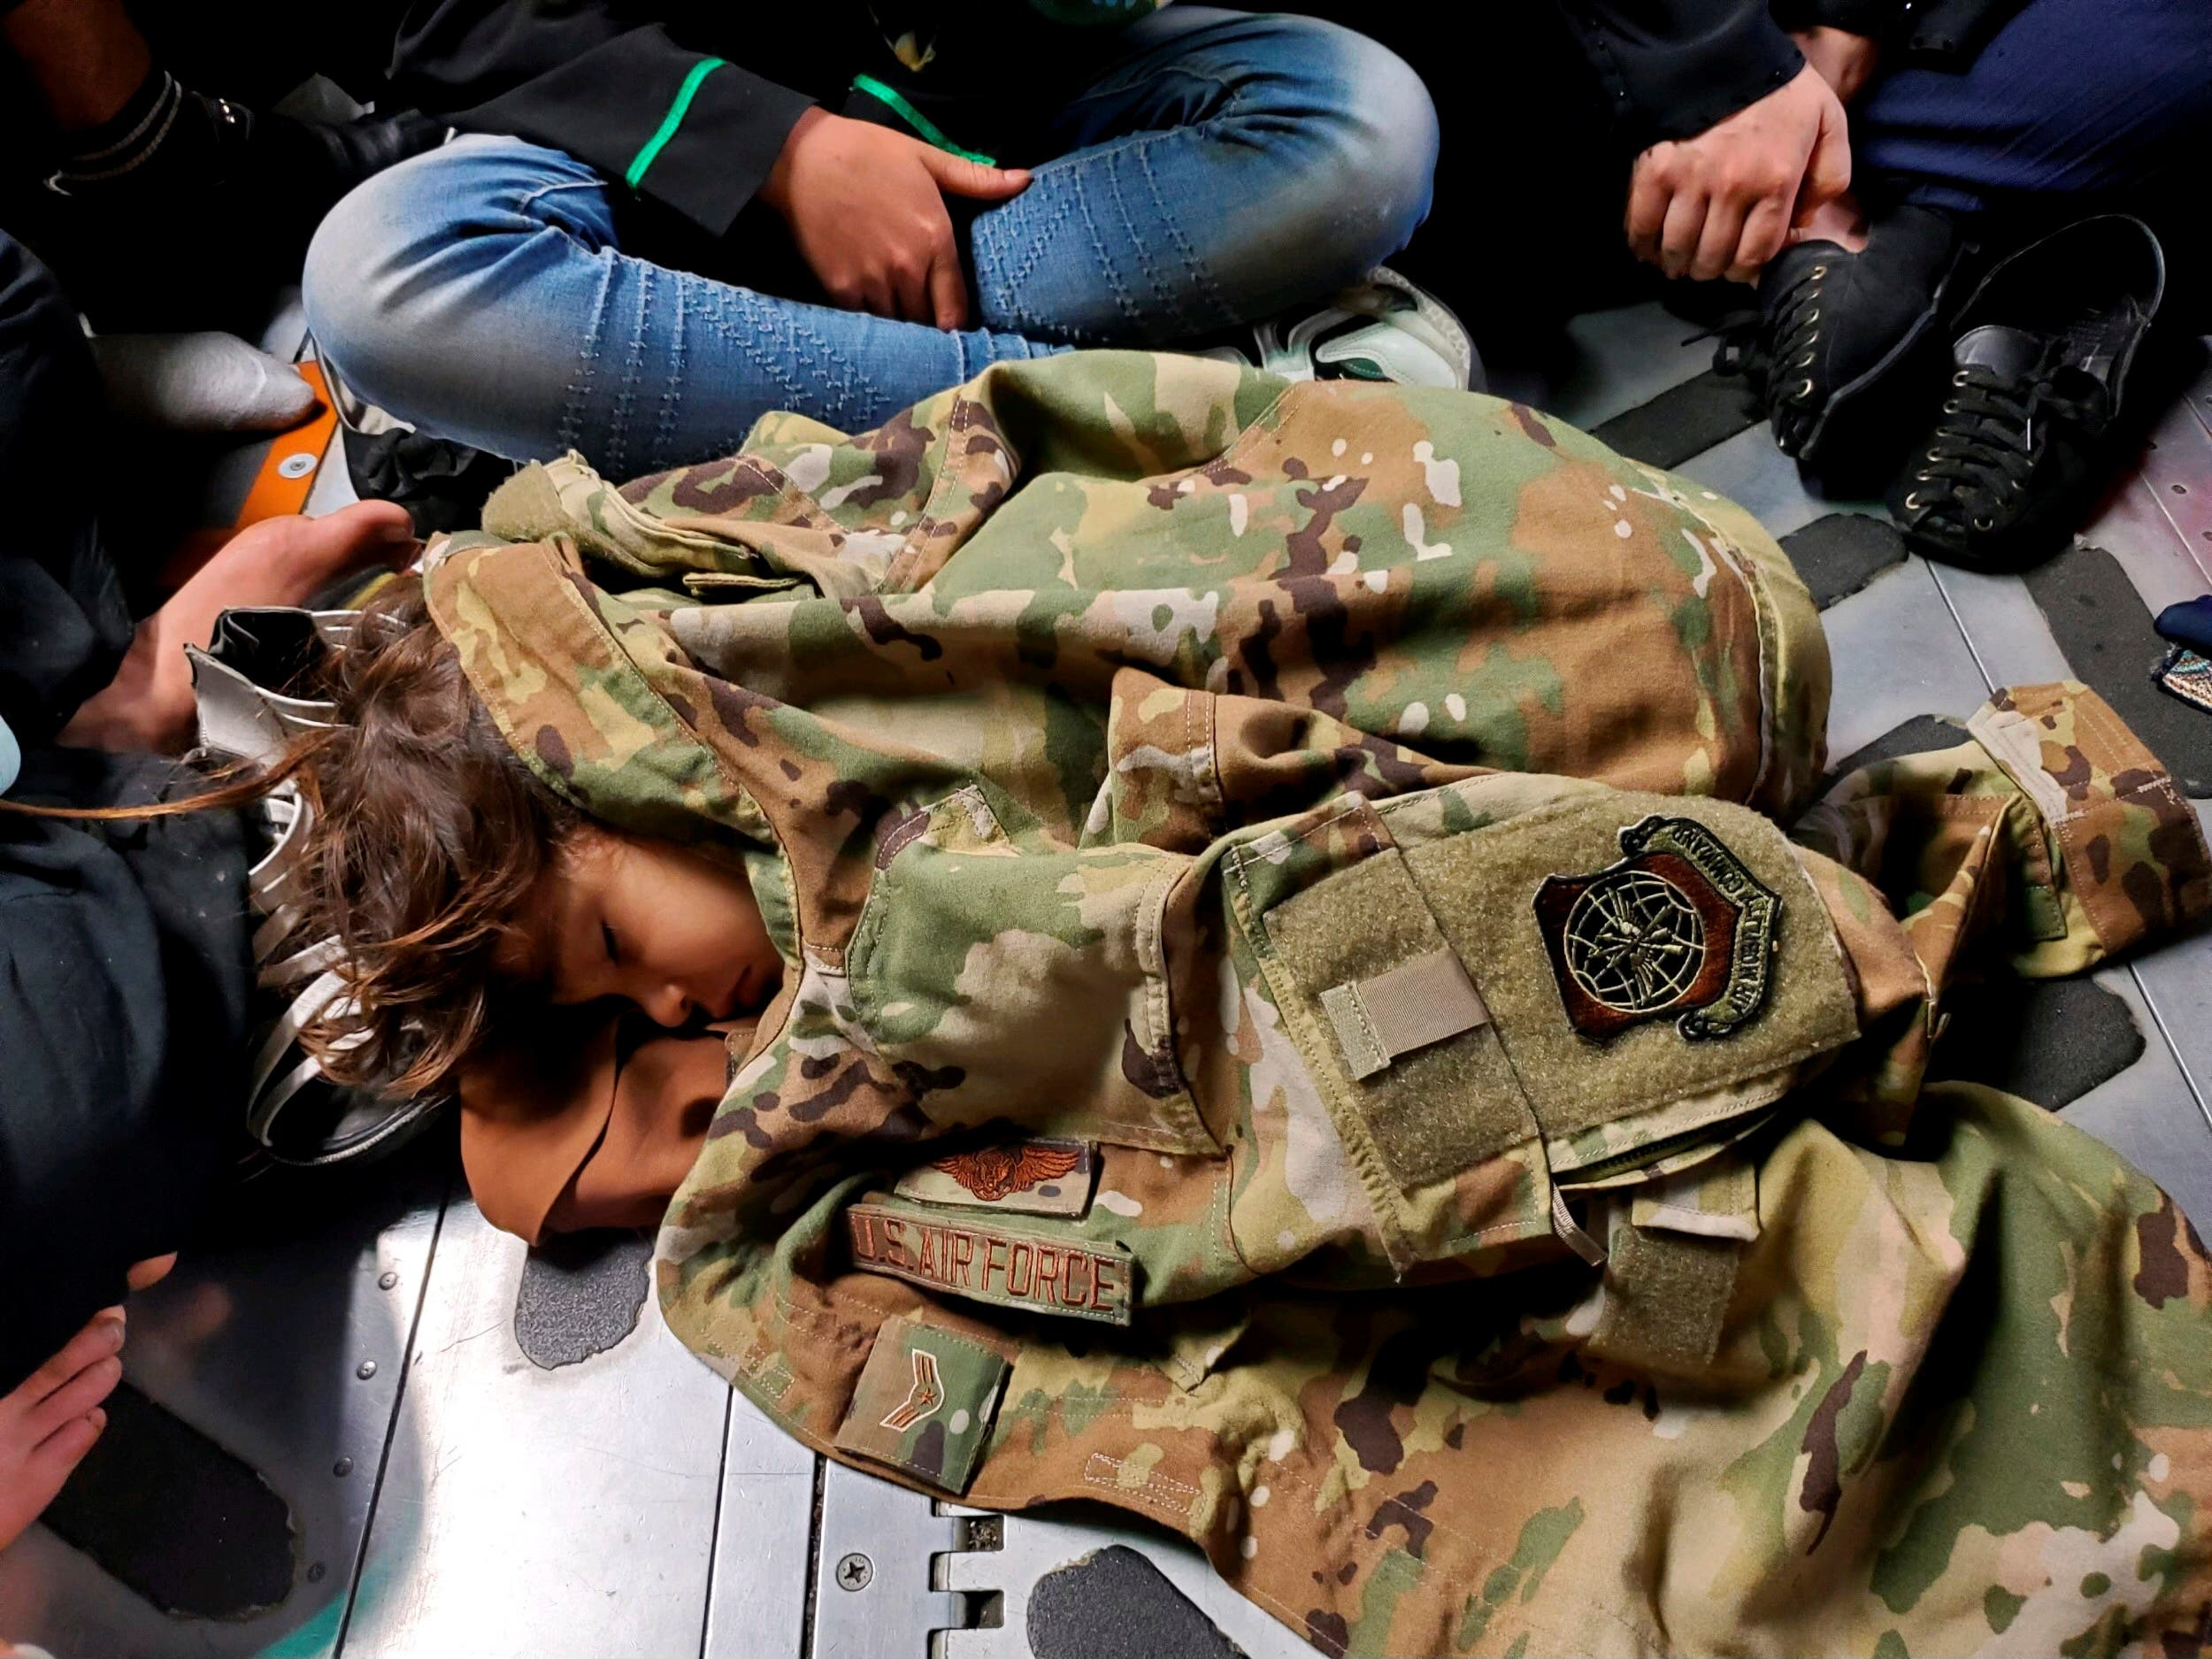 An Afghan child sleeps on the cargo floor of a US Air Force C-17 Globemaster III, kept warm by the uniform of Airman First Class Nicolas Baron, C-17 loadmaster, during an evacuation flight from Kabul, Afghanistan, August 18, 2021. (Reuters)